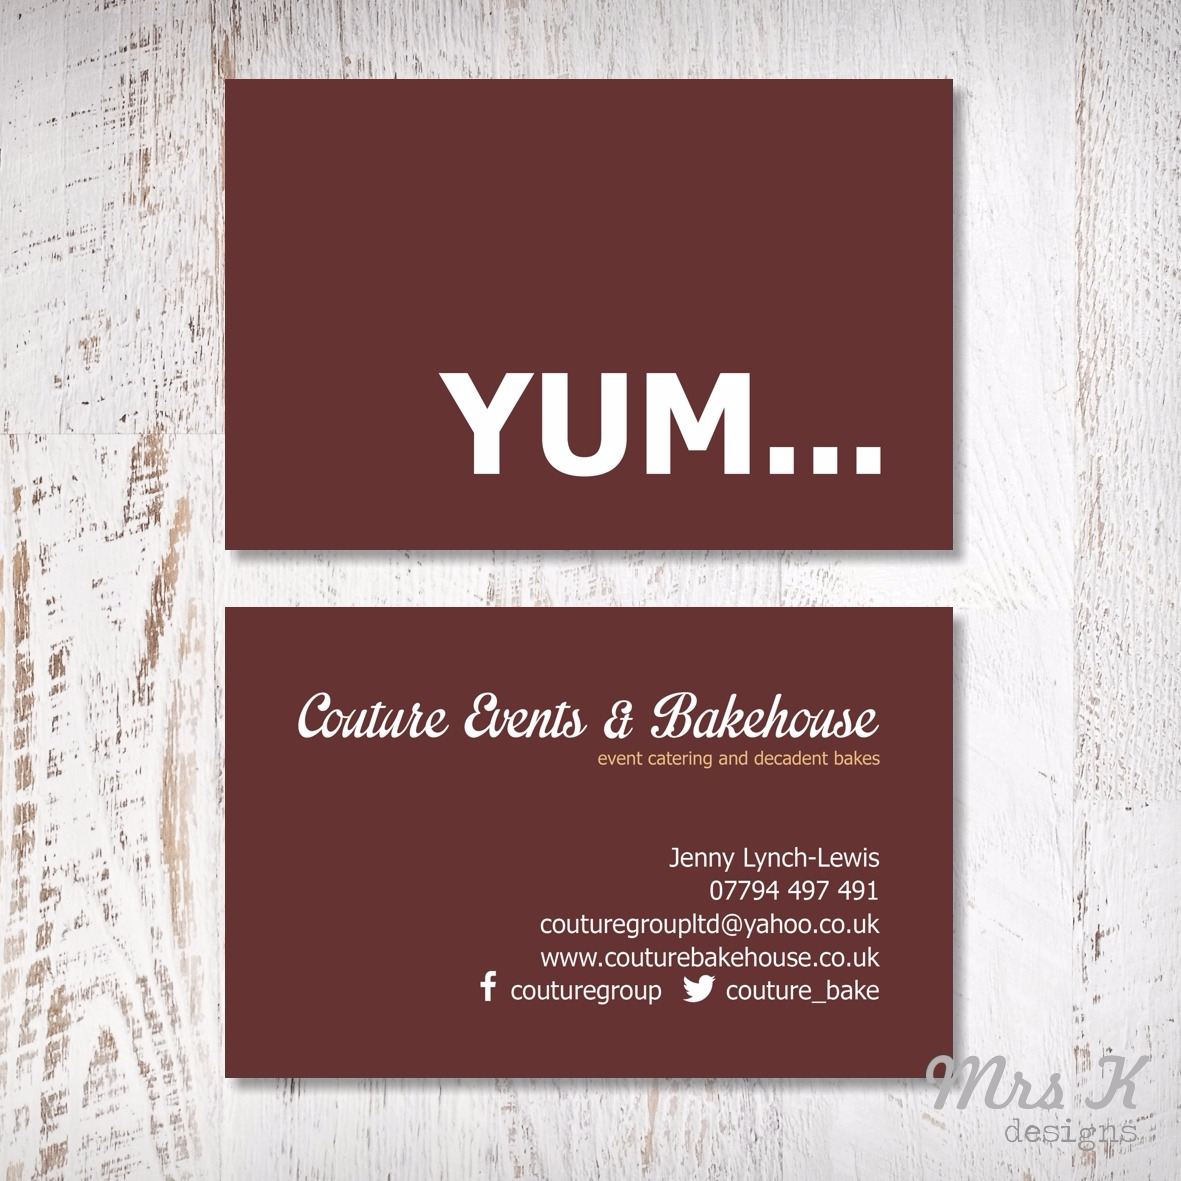 business cards - couture events and bakehouse